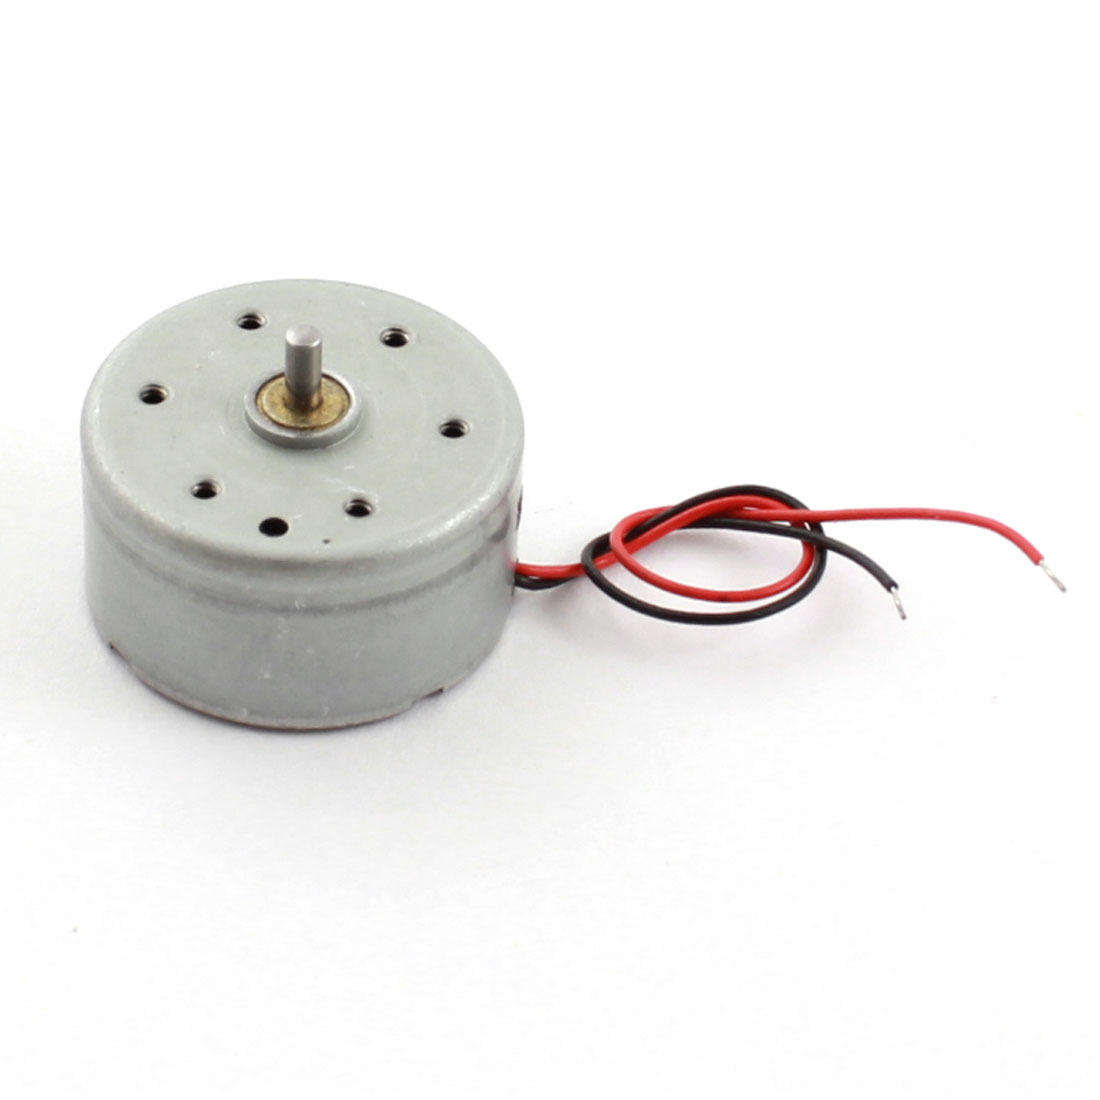 6V 10000 RPM 2mm Round Shaft 7cm Long Wire Leads Cylinder Shaped Magnetic Electric Miniature DC Motor